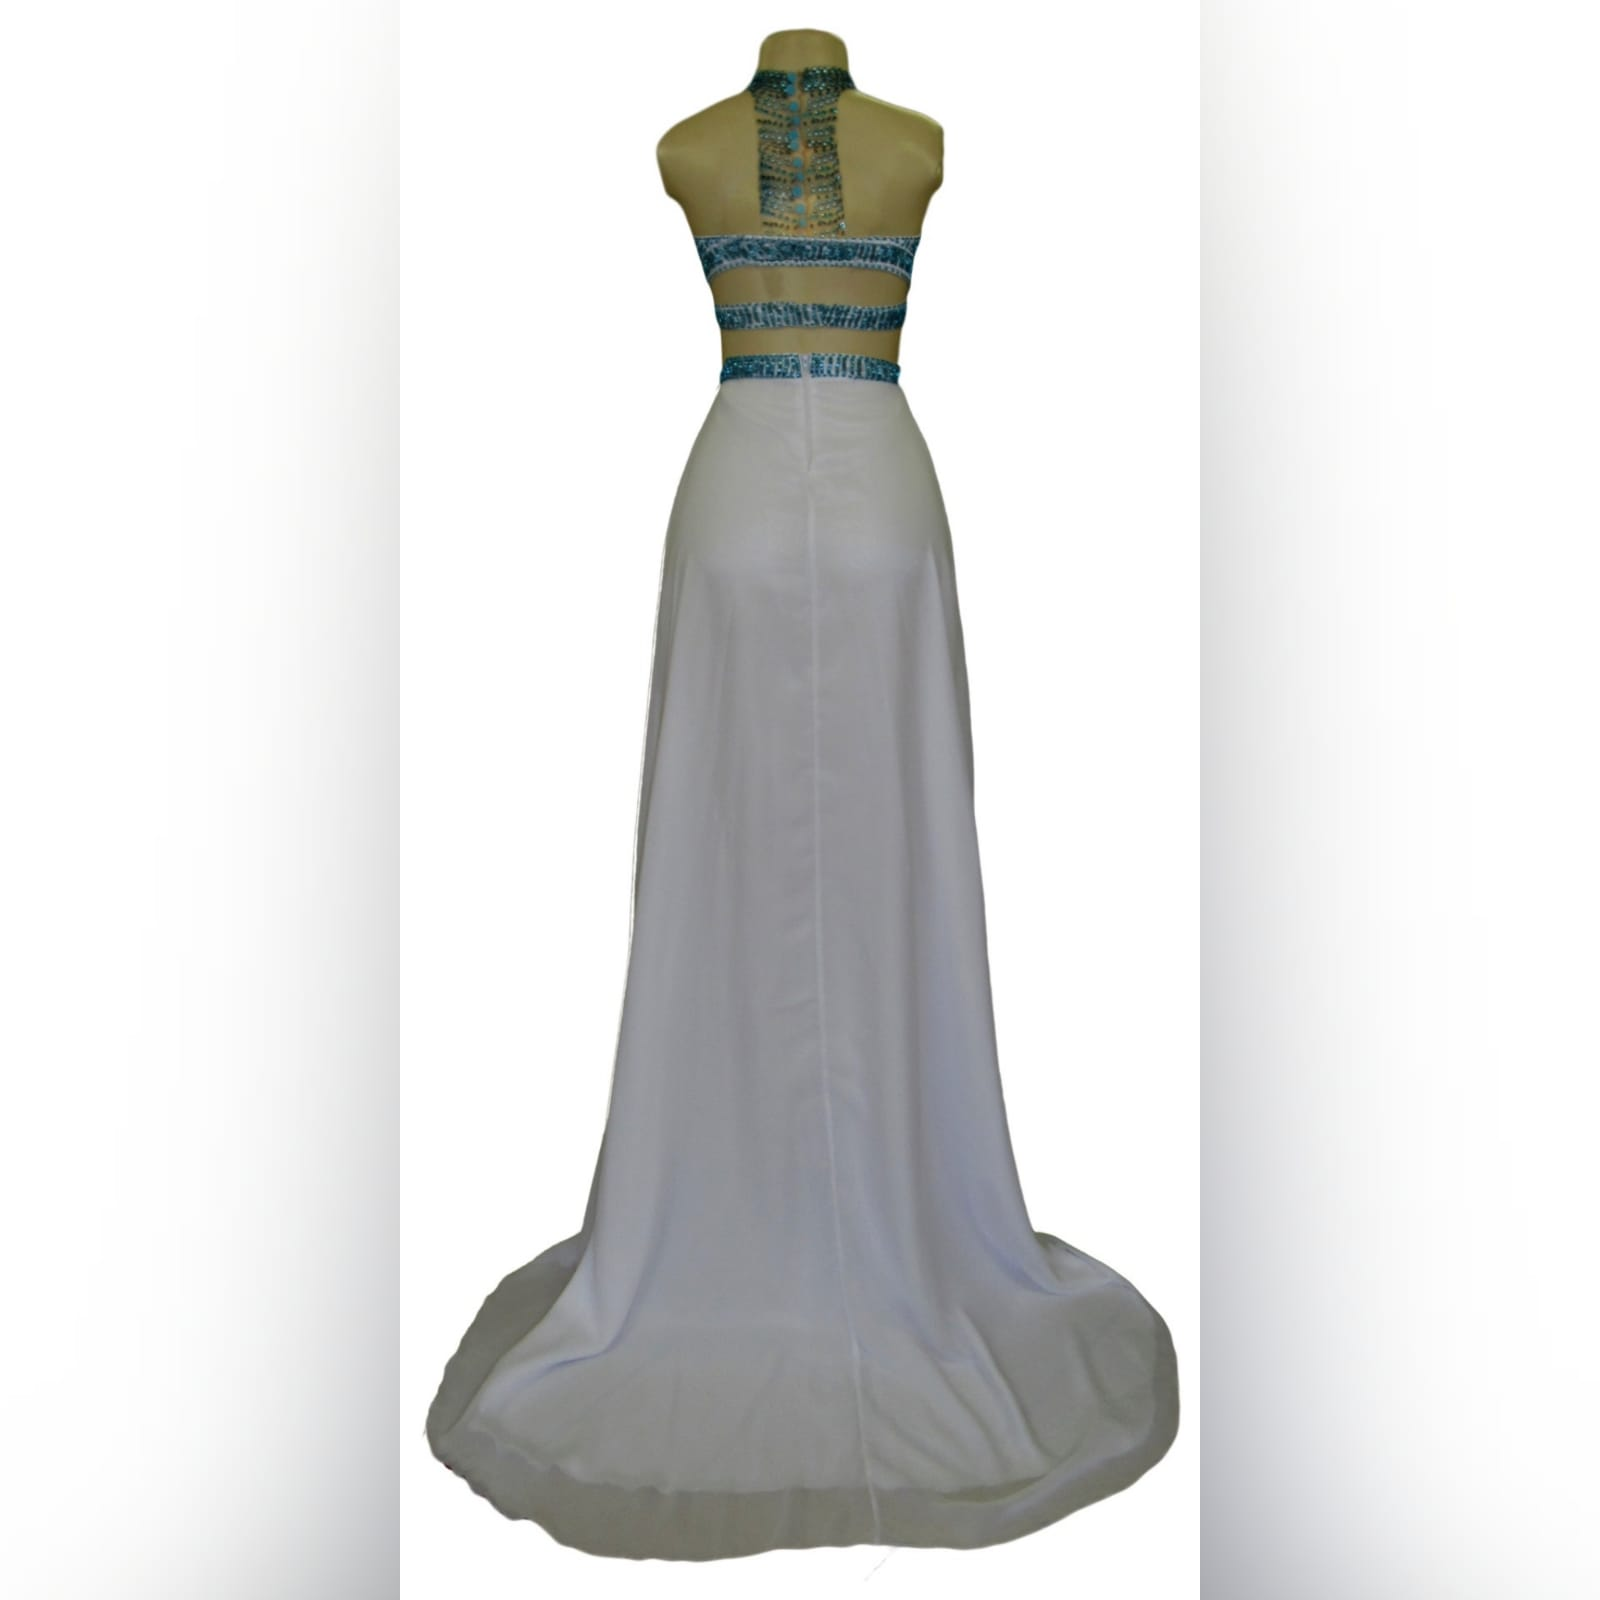 2 piece white and turquoise formal dress 8 2 piece white and turquoise formal dress. Crop top beaded with turquoise beads, chiffon skirt with a crossed slit and a train and a beaded waistband.